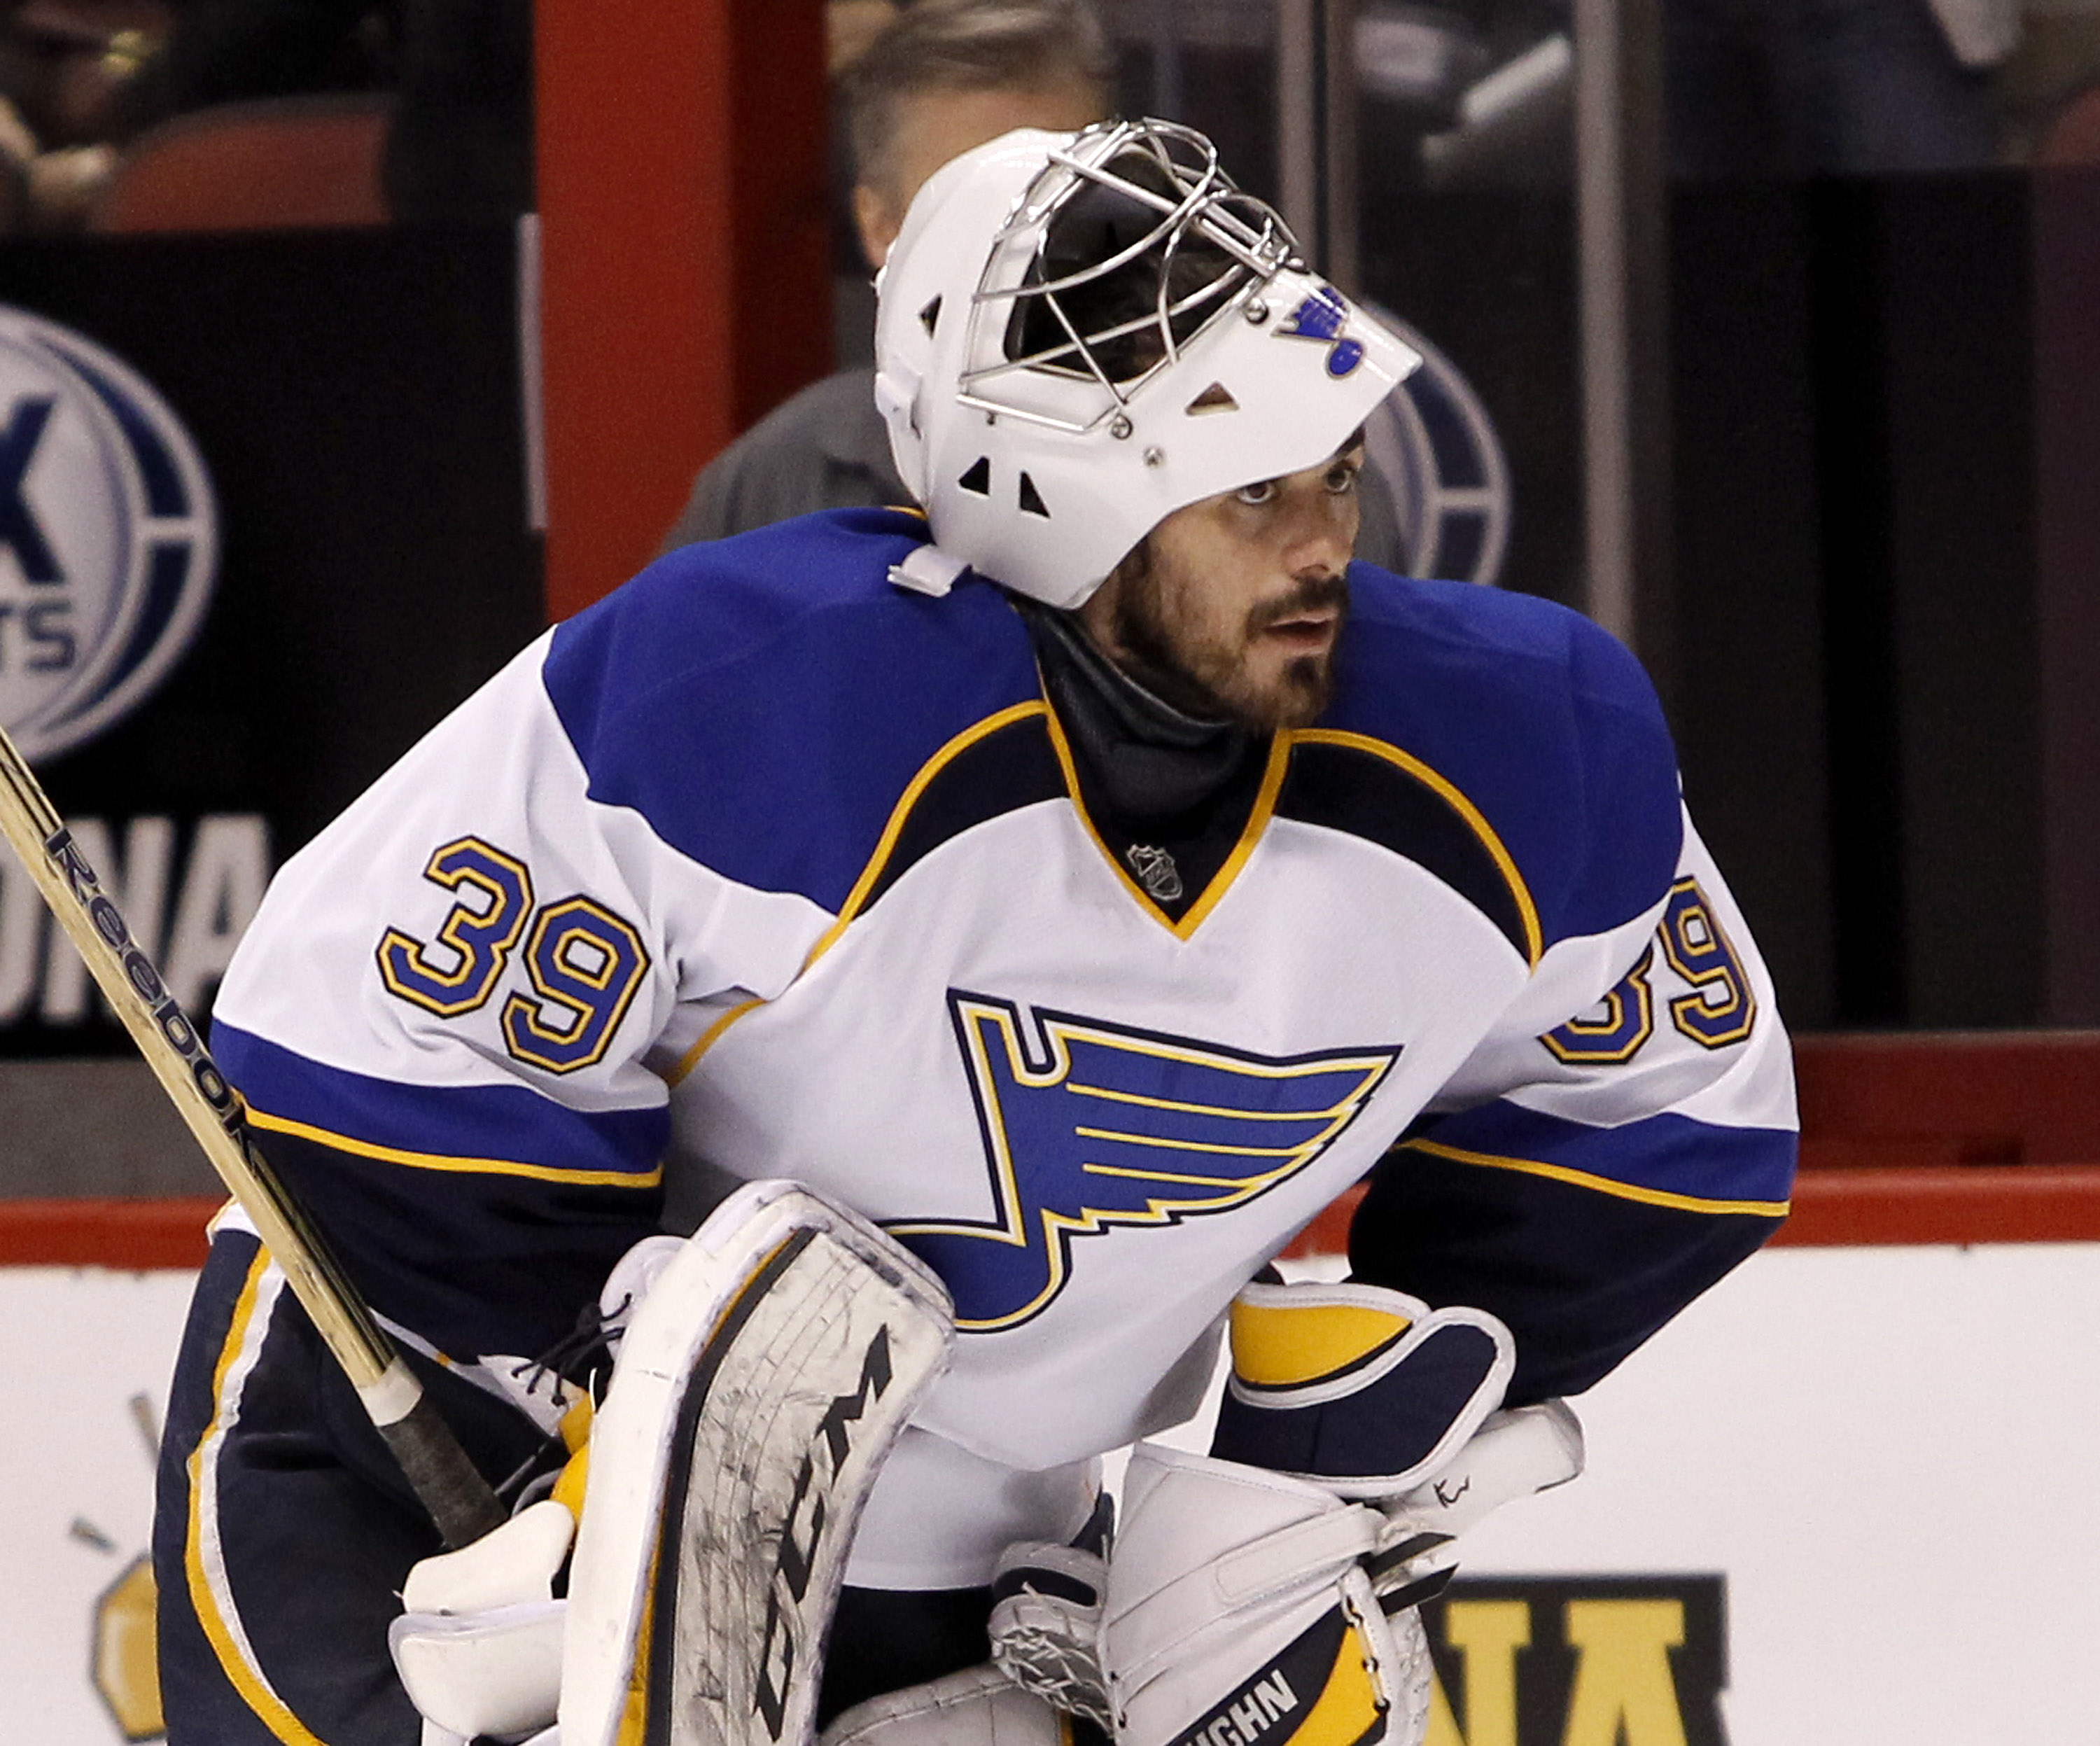 Blues rally past Coyotes 4-2 in Miller's debut